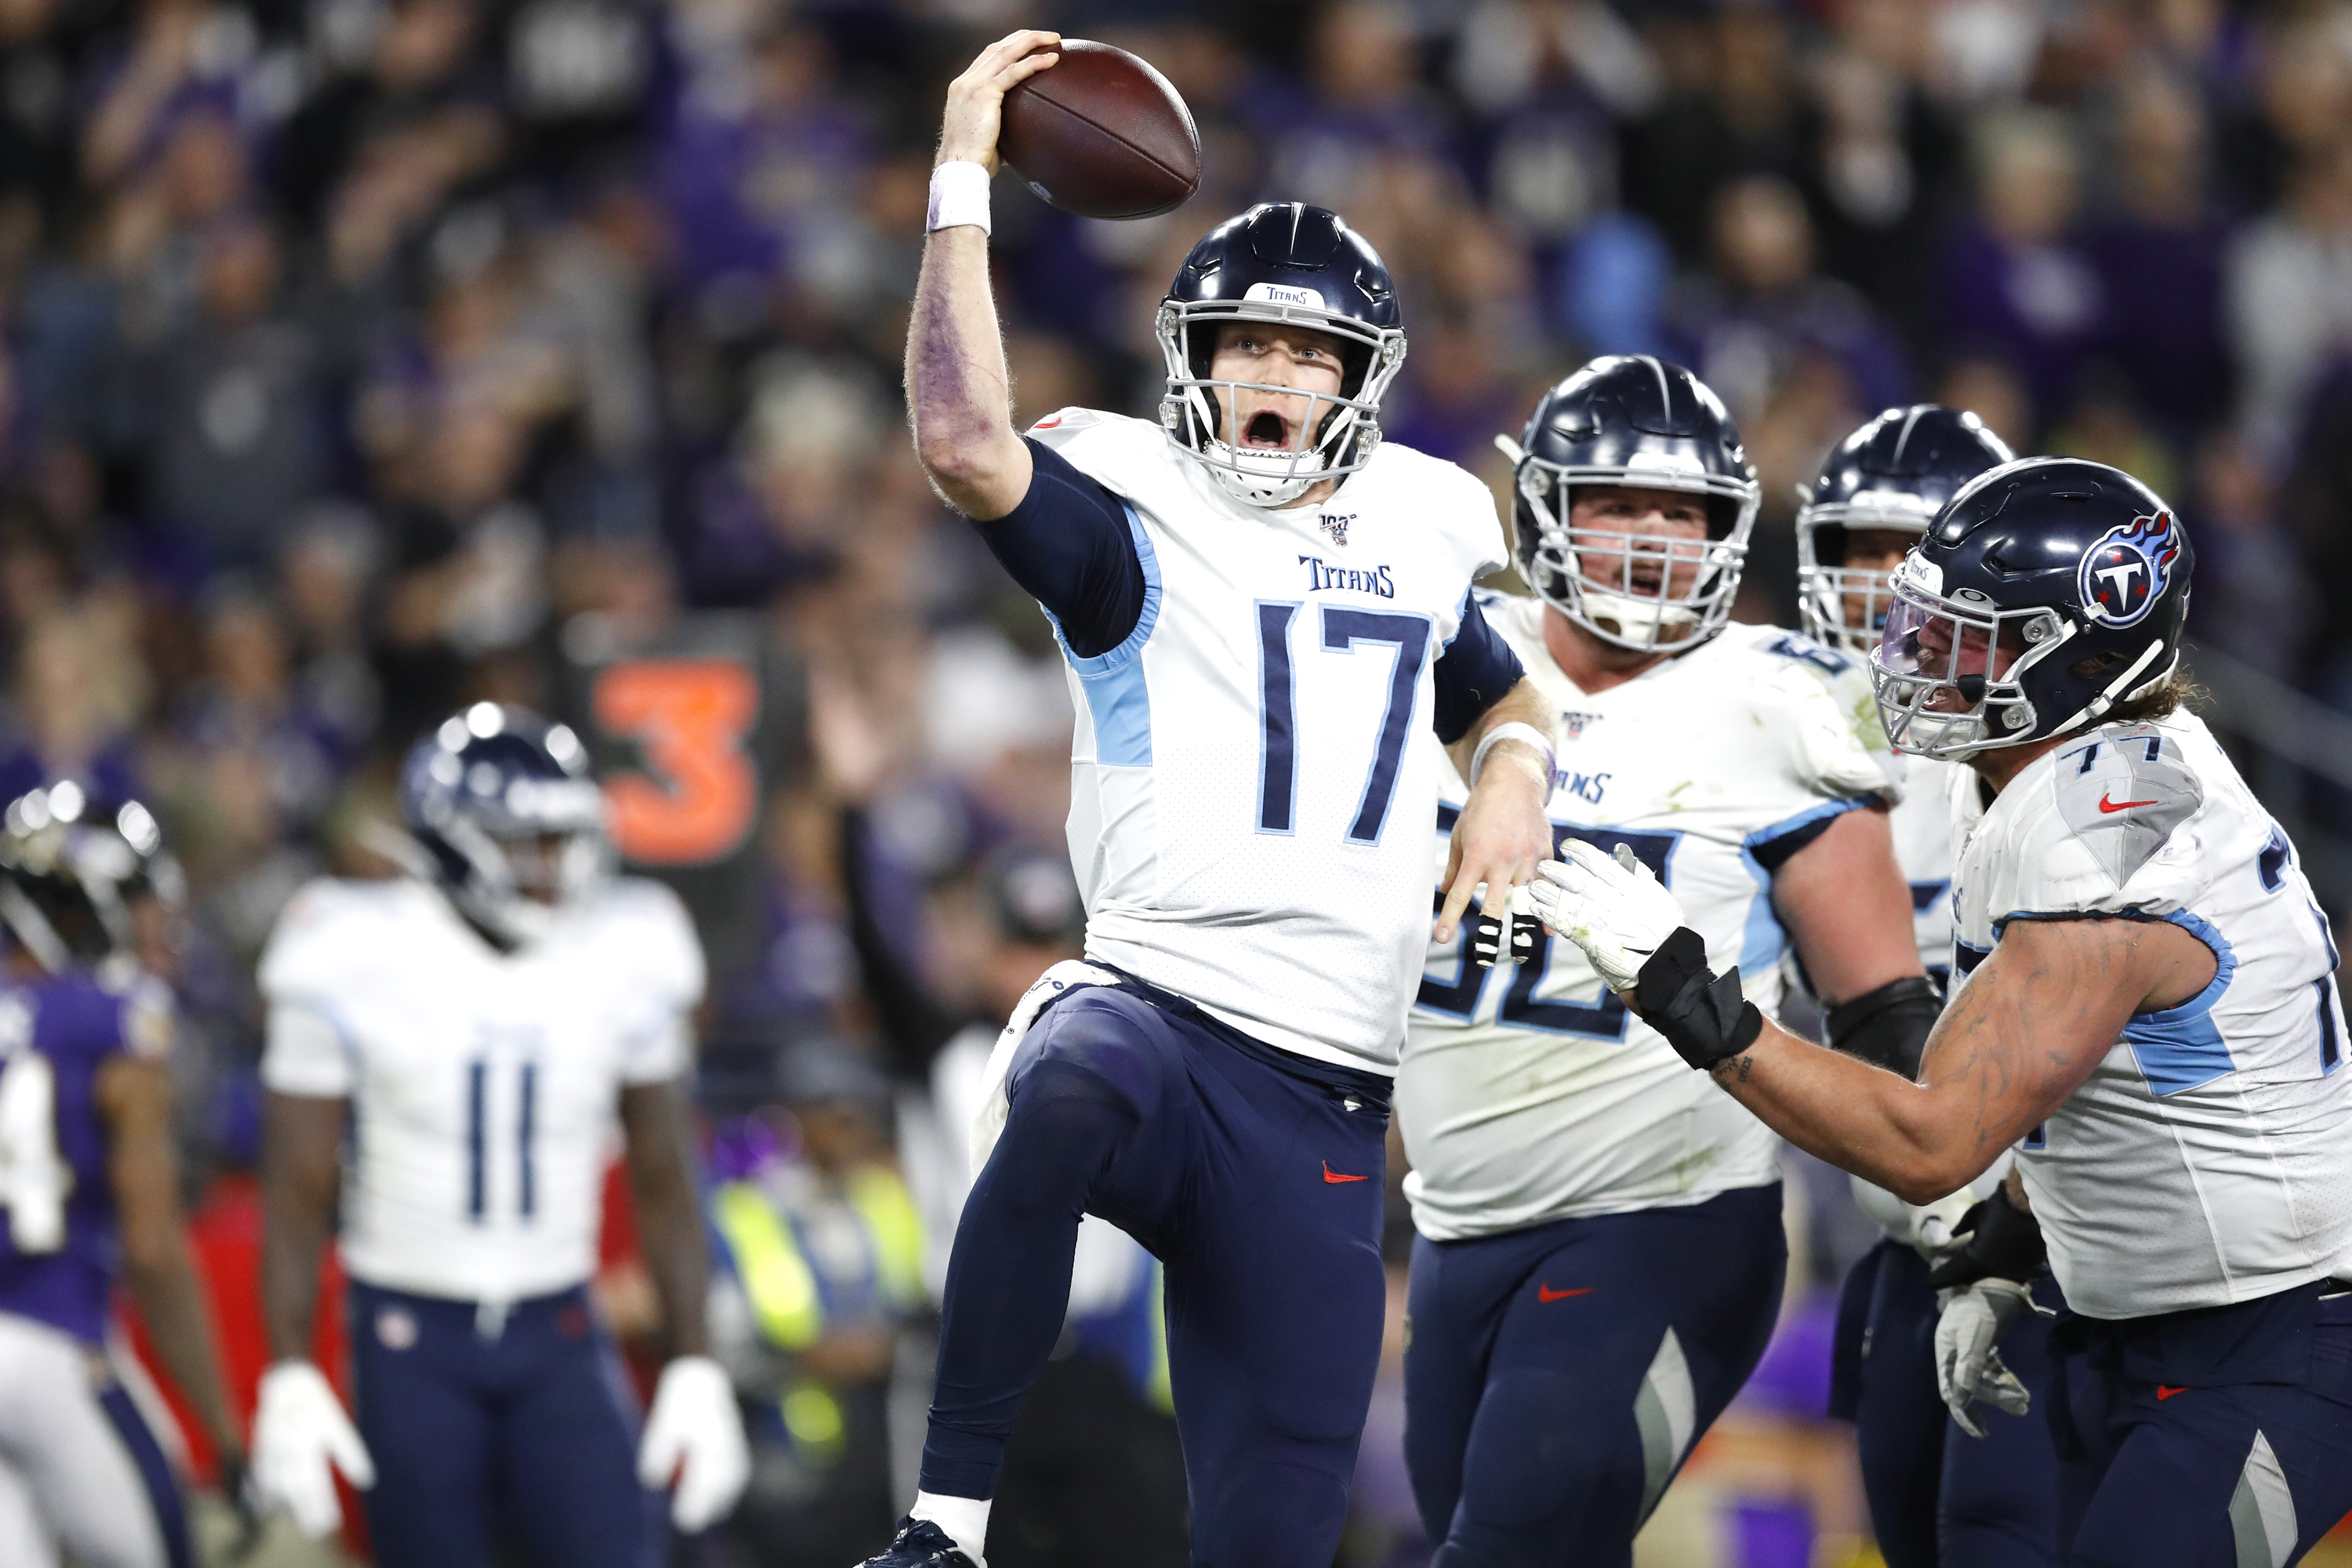 Ryan Tannehill, the Titans' unlikely savior, is one upset away from  starting the Super Bowl - The Washington Post